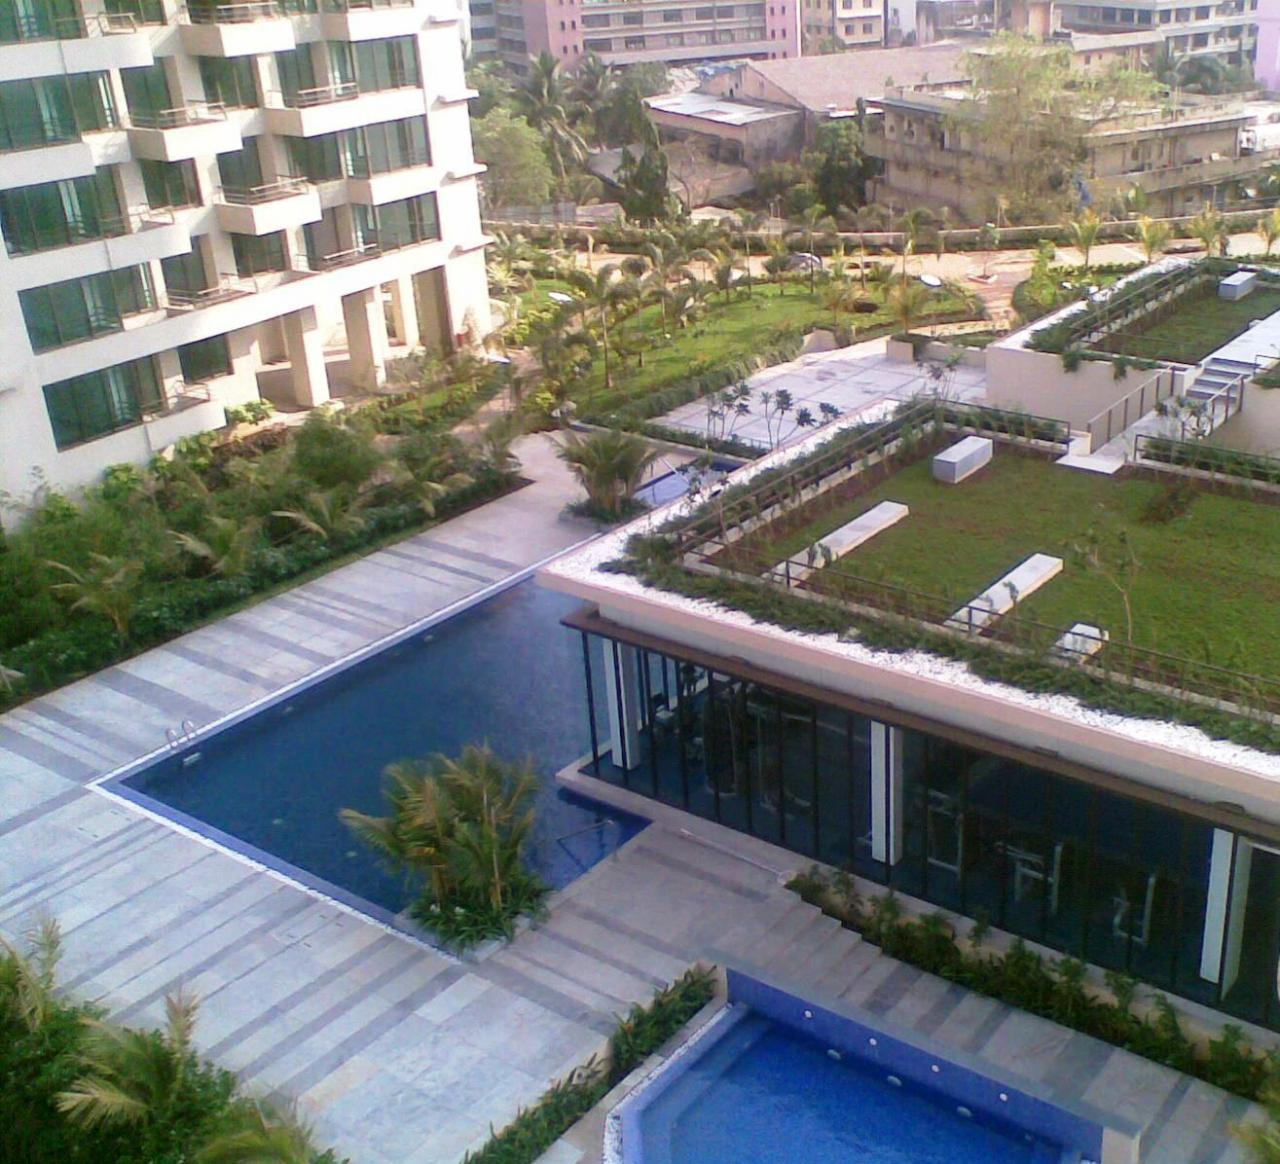 Modern Italian Modular Kitchens Rs 1100 Square Feet: Flats For Sale In Andheri West  2 BHK